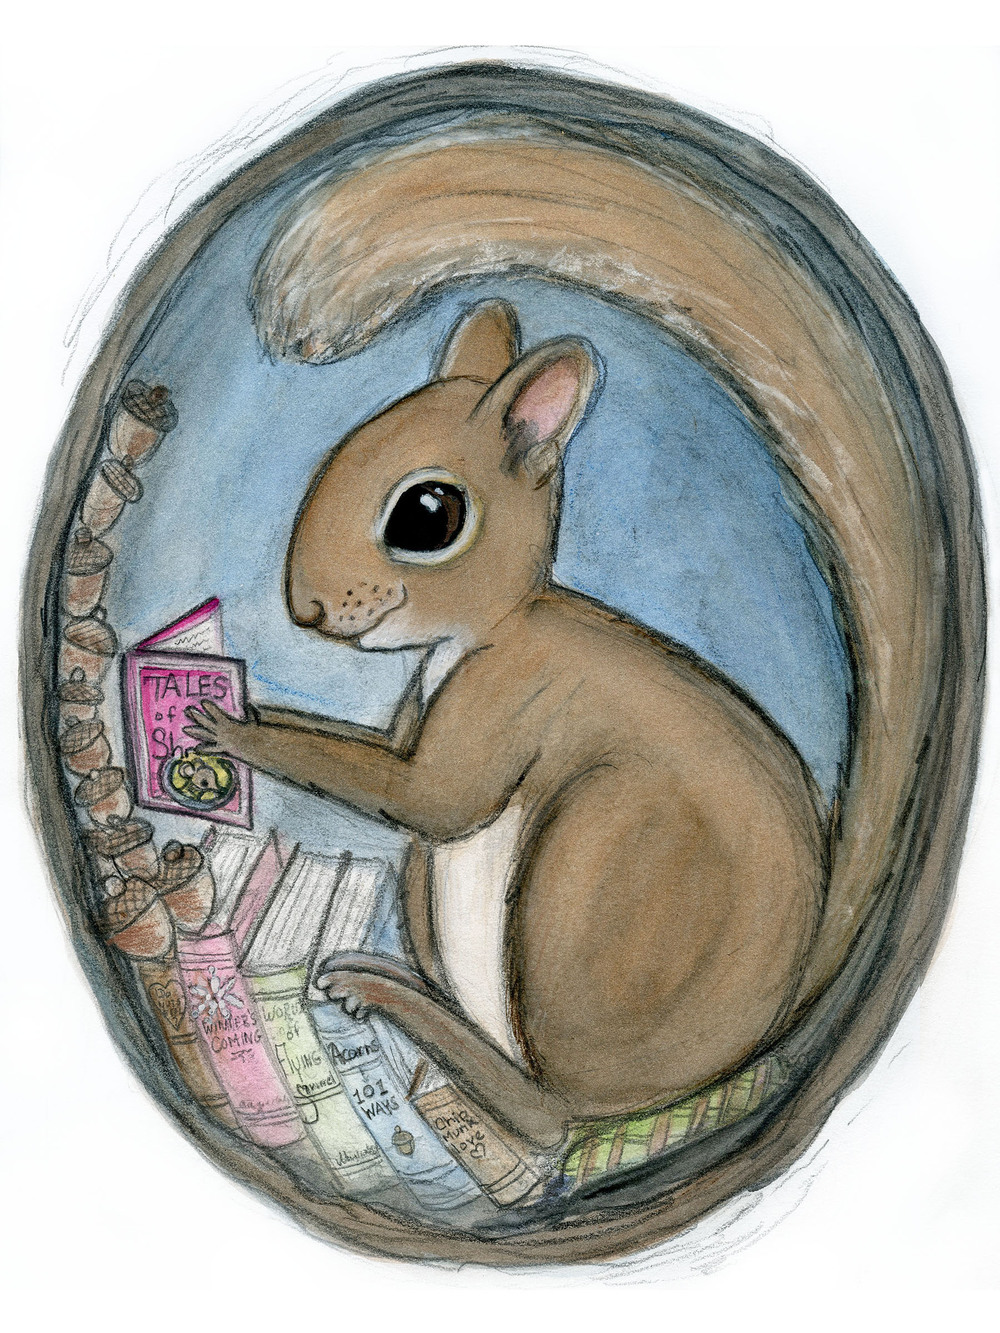 Sherman Squirrel Reads a Tale